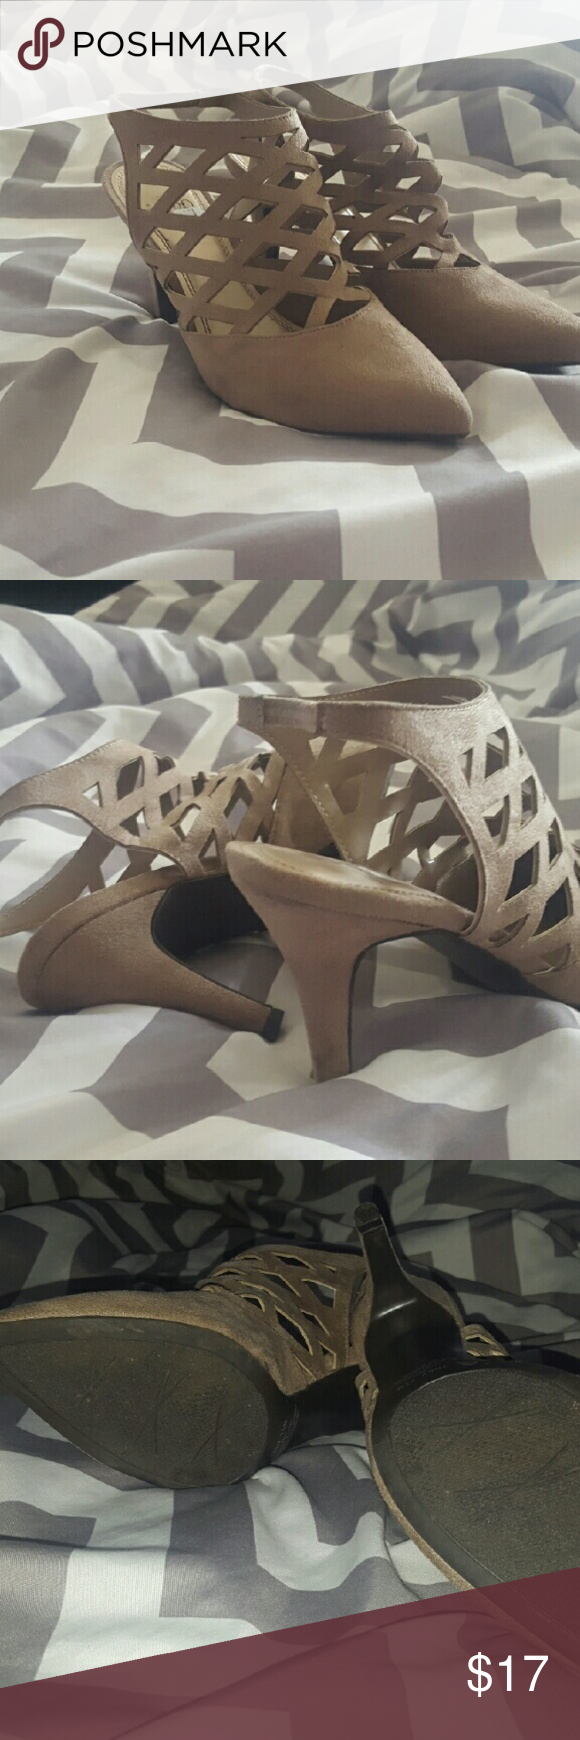 Faux suede heels Used faux suede taupe heels.  This heel is pretty low maybe 3 inches,  which makes them extremely comfortable!. Very cute shoe, the brand is impo.  Used but very minimal wear. There is a small black for on inside left shoe.  Please see pics,  other than that.  Very good condition. Shoes